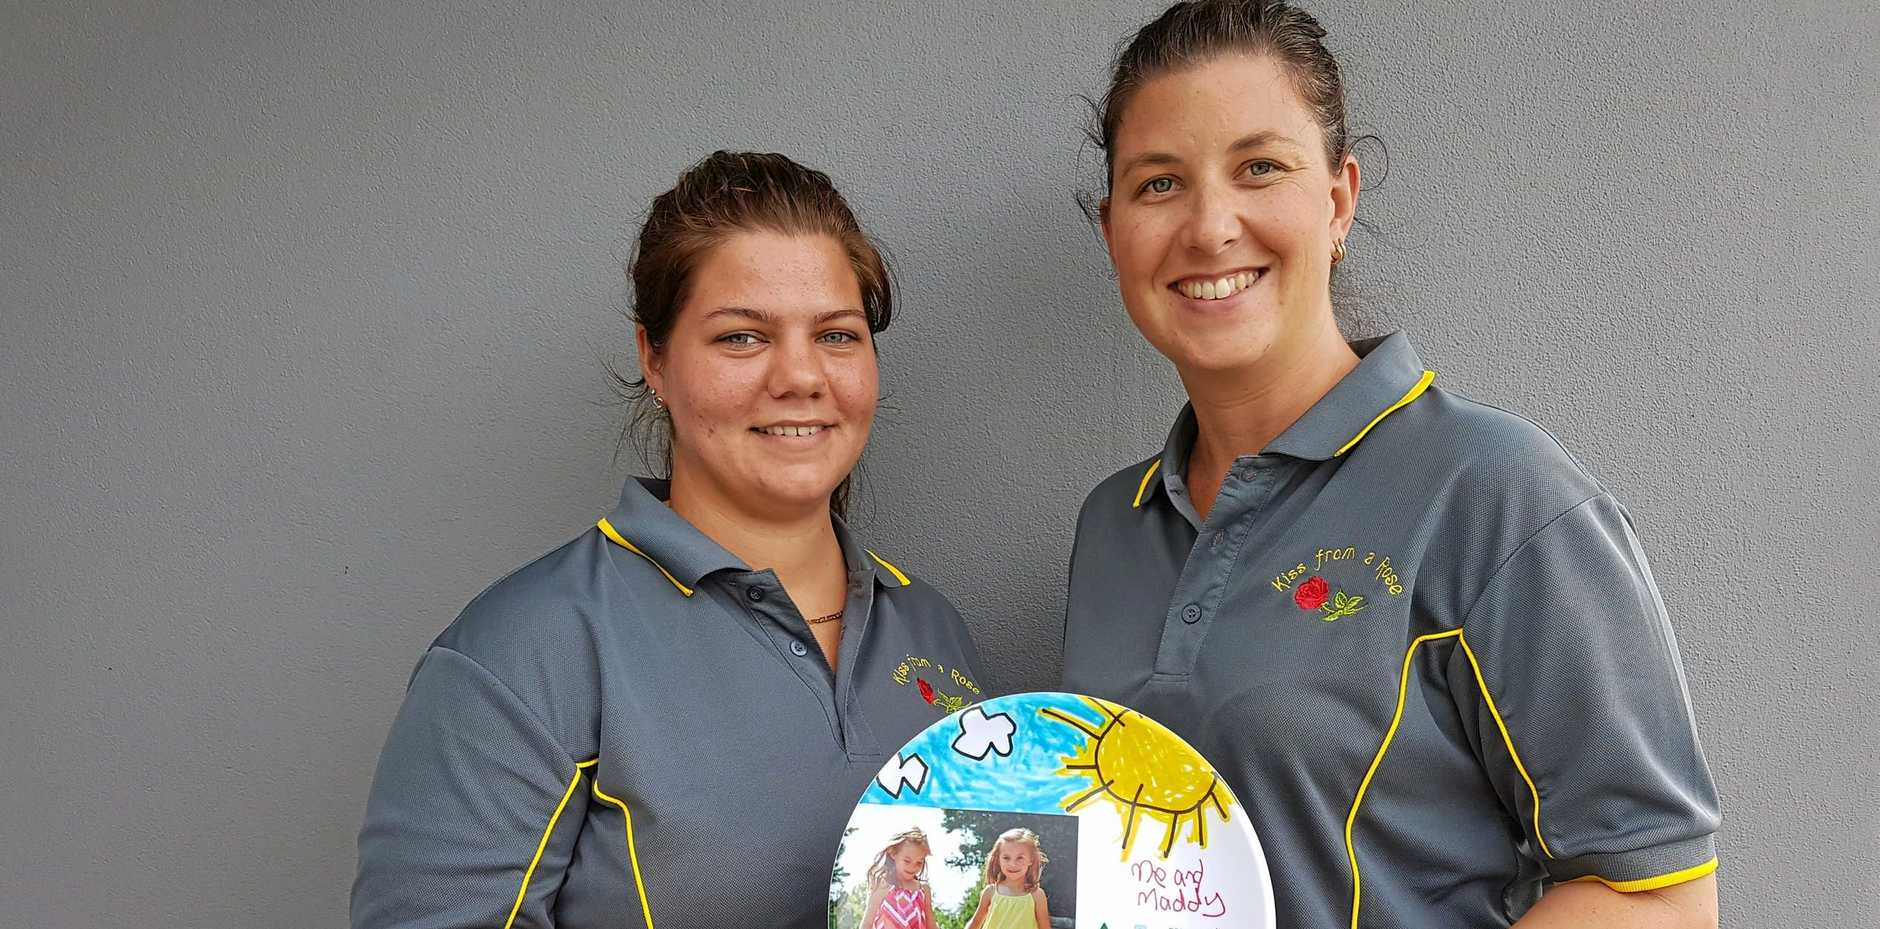 IN MEMORY: Team captain Sky Arnold and fundraiser organiser Mikayla Glossop bonded over losing loved ones to cancer.